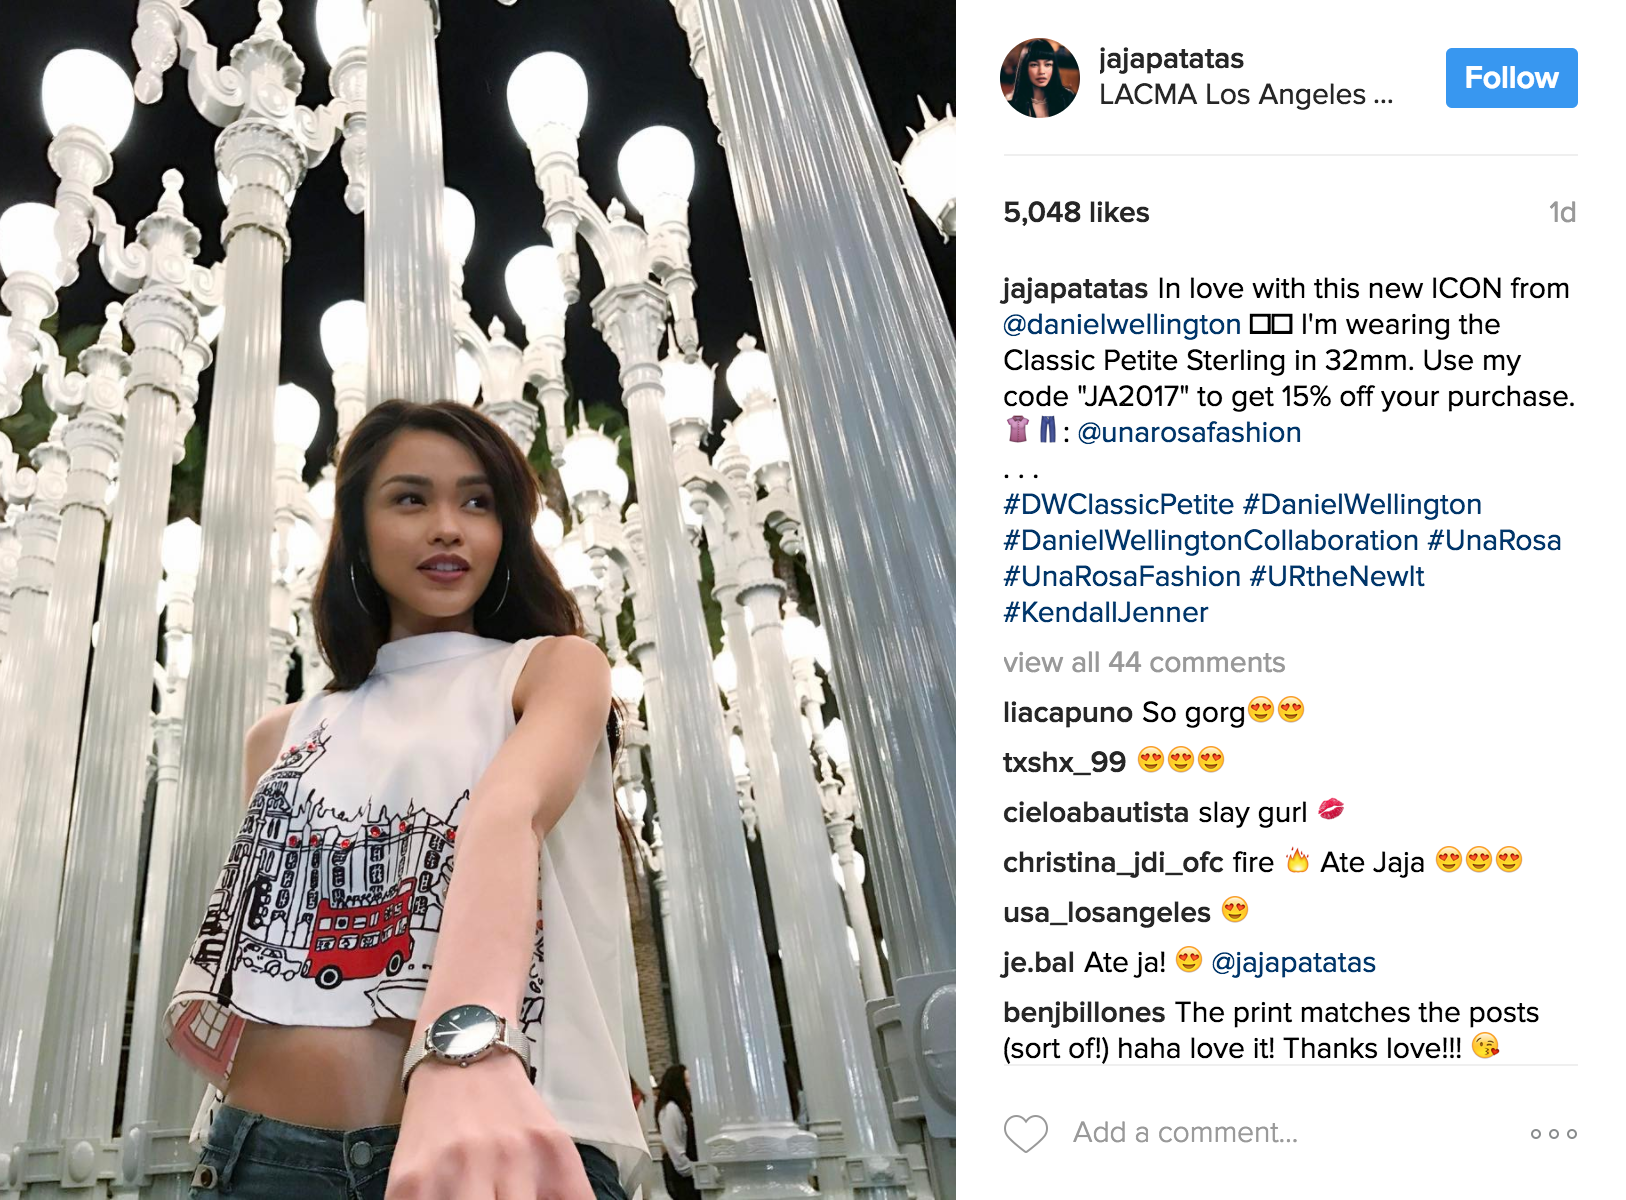 Instagram Influencer Marketing: Three Steps To Unleash The Power Of Social Celebrities In Ecommerce